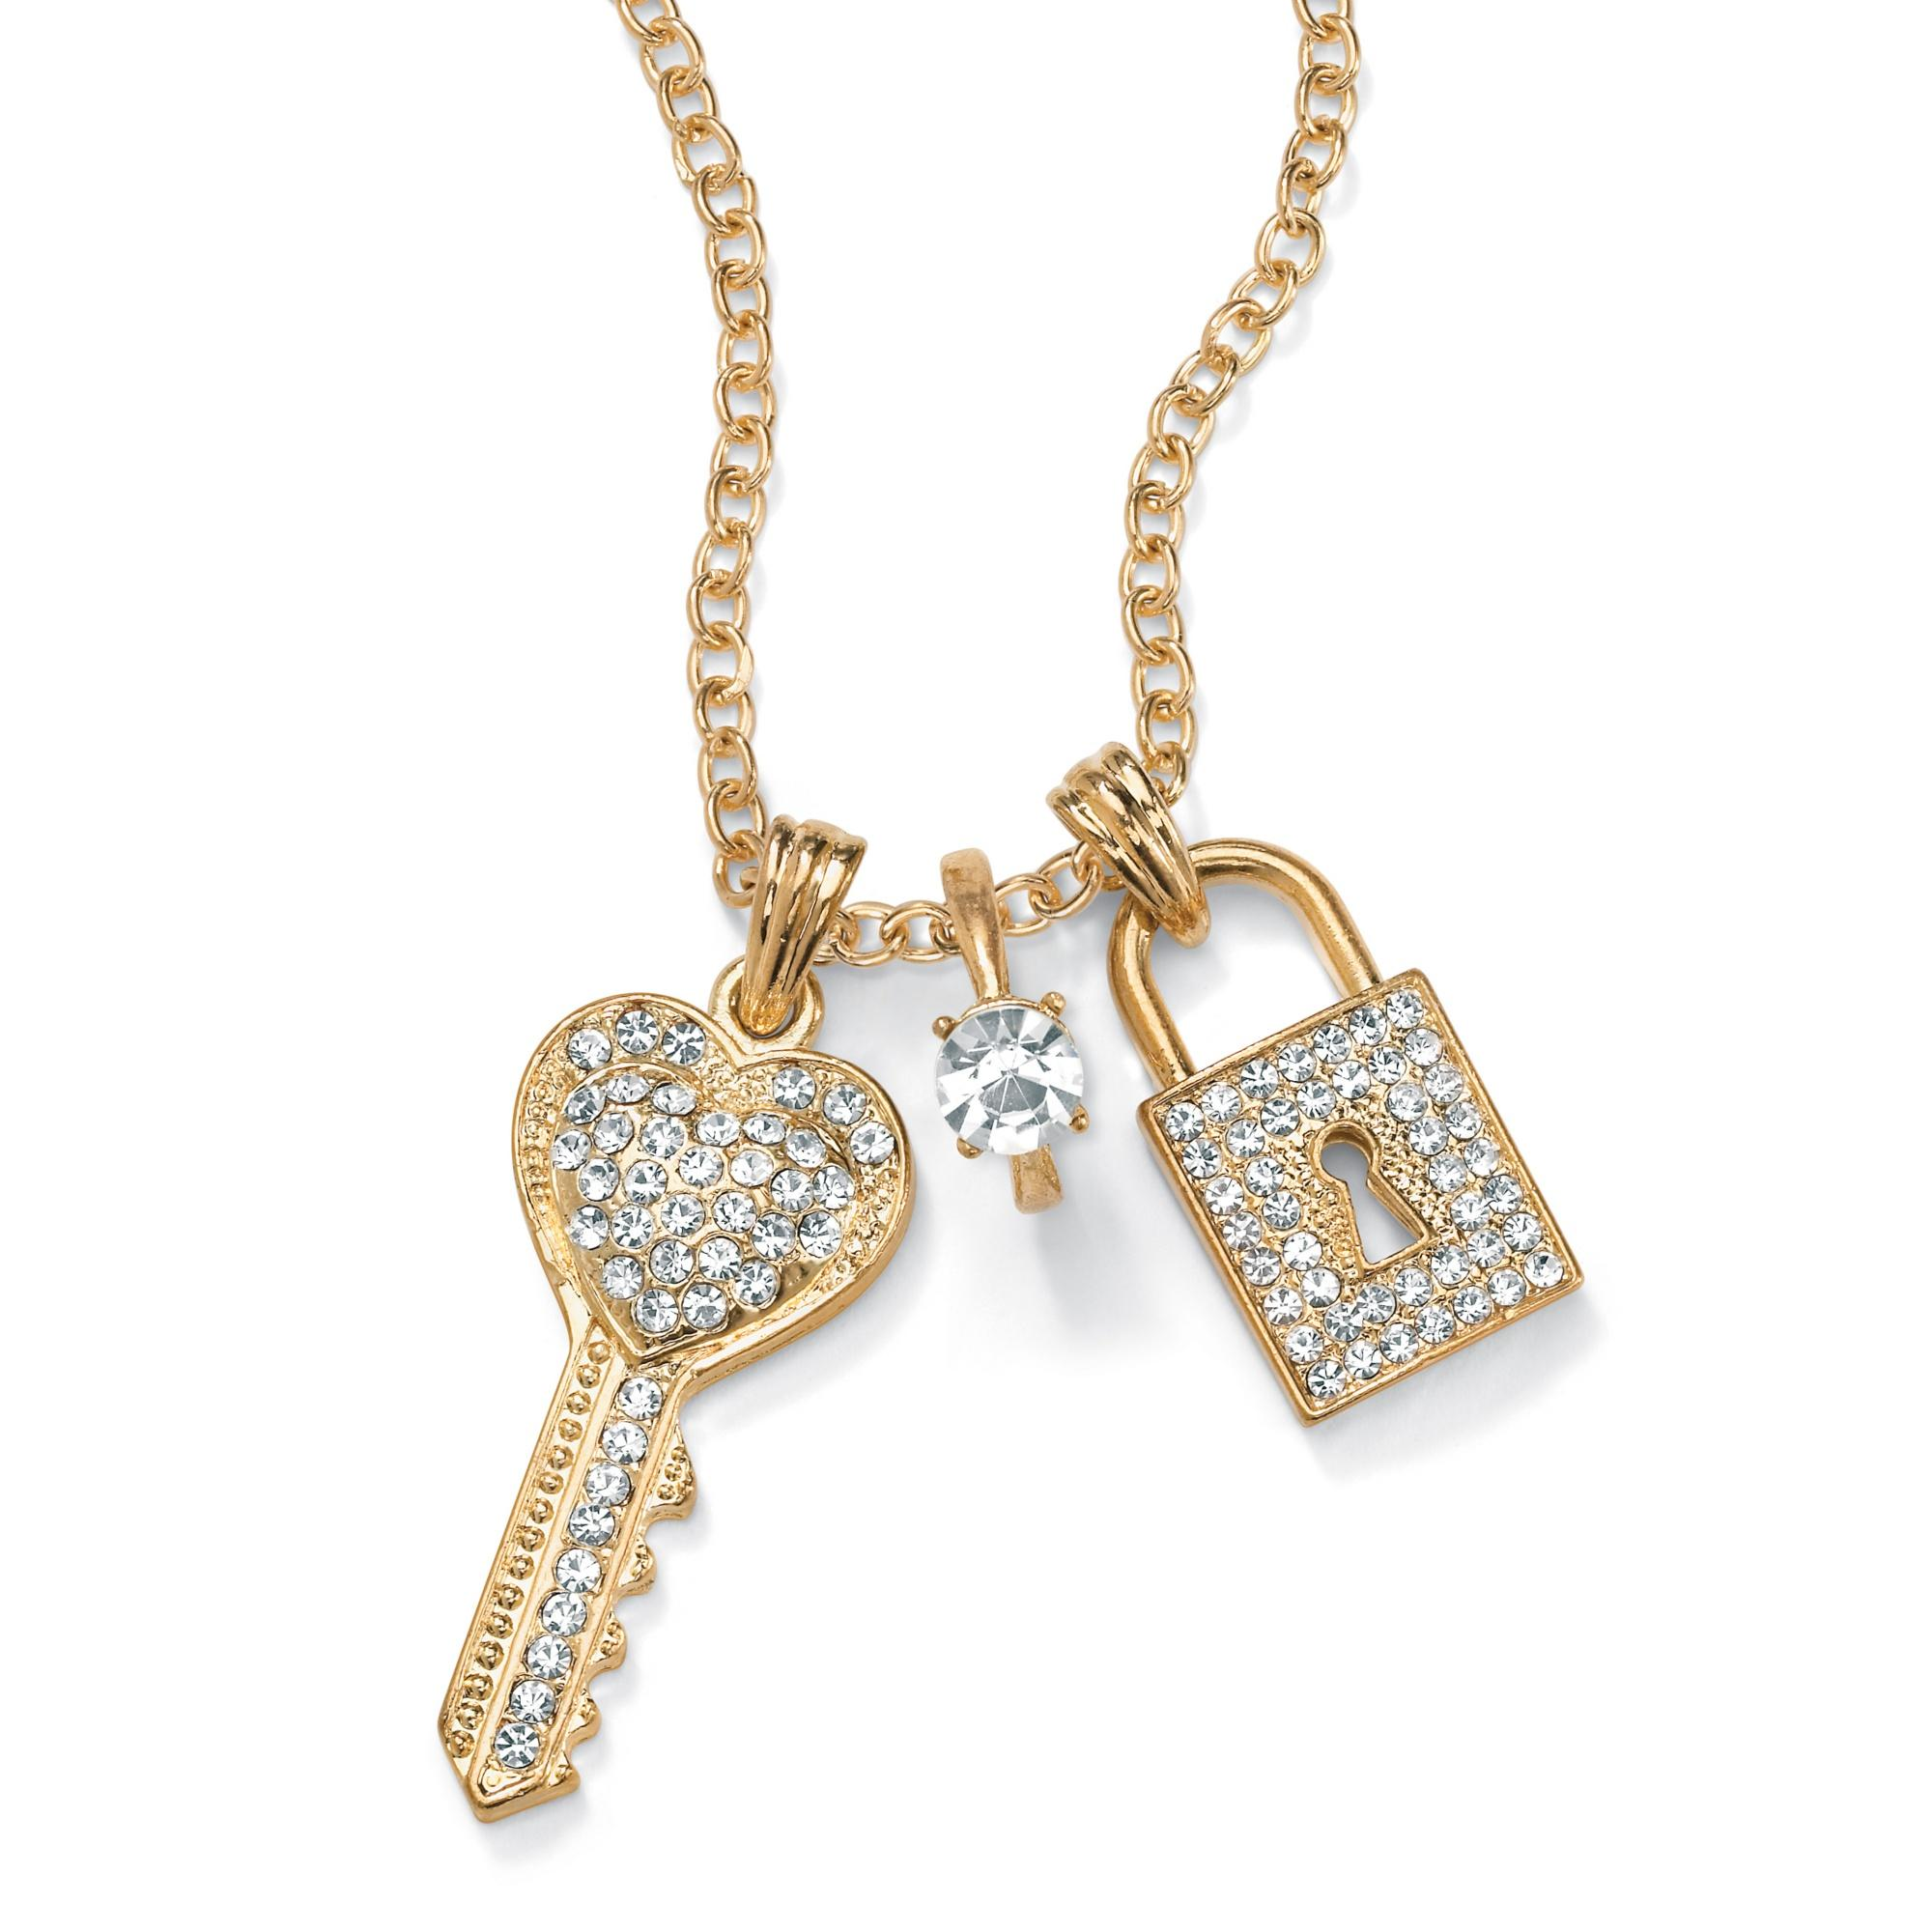 PalmBeach Crystal Key, Ring and Lock Charm Necklace in Yellow Gold Tone Bold Fashion